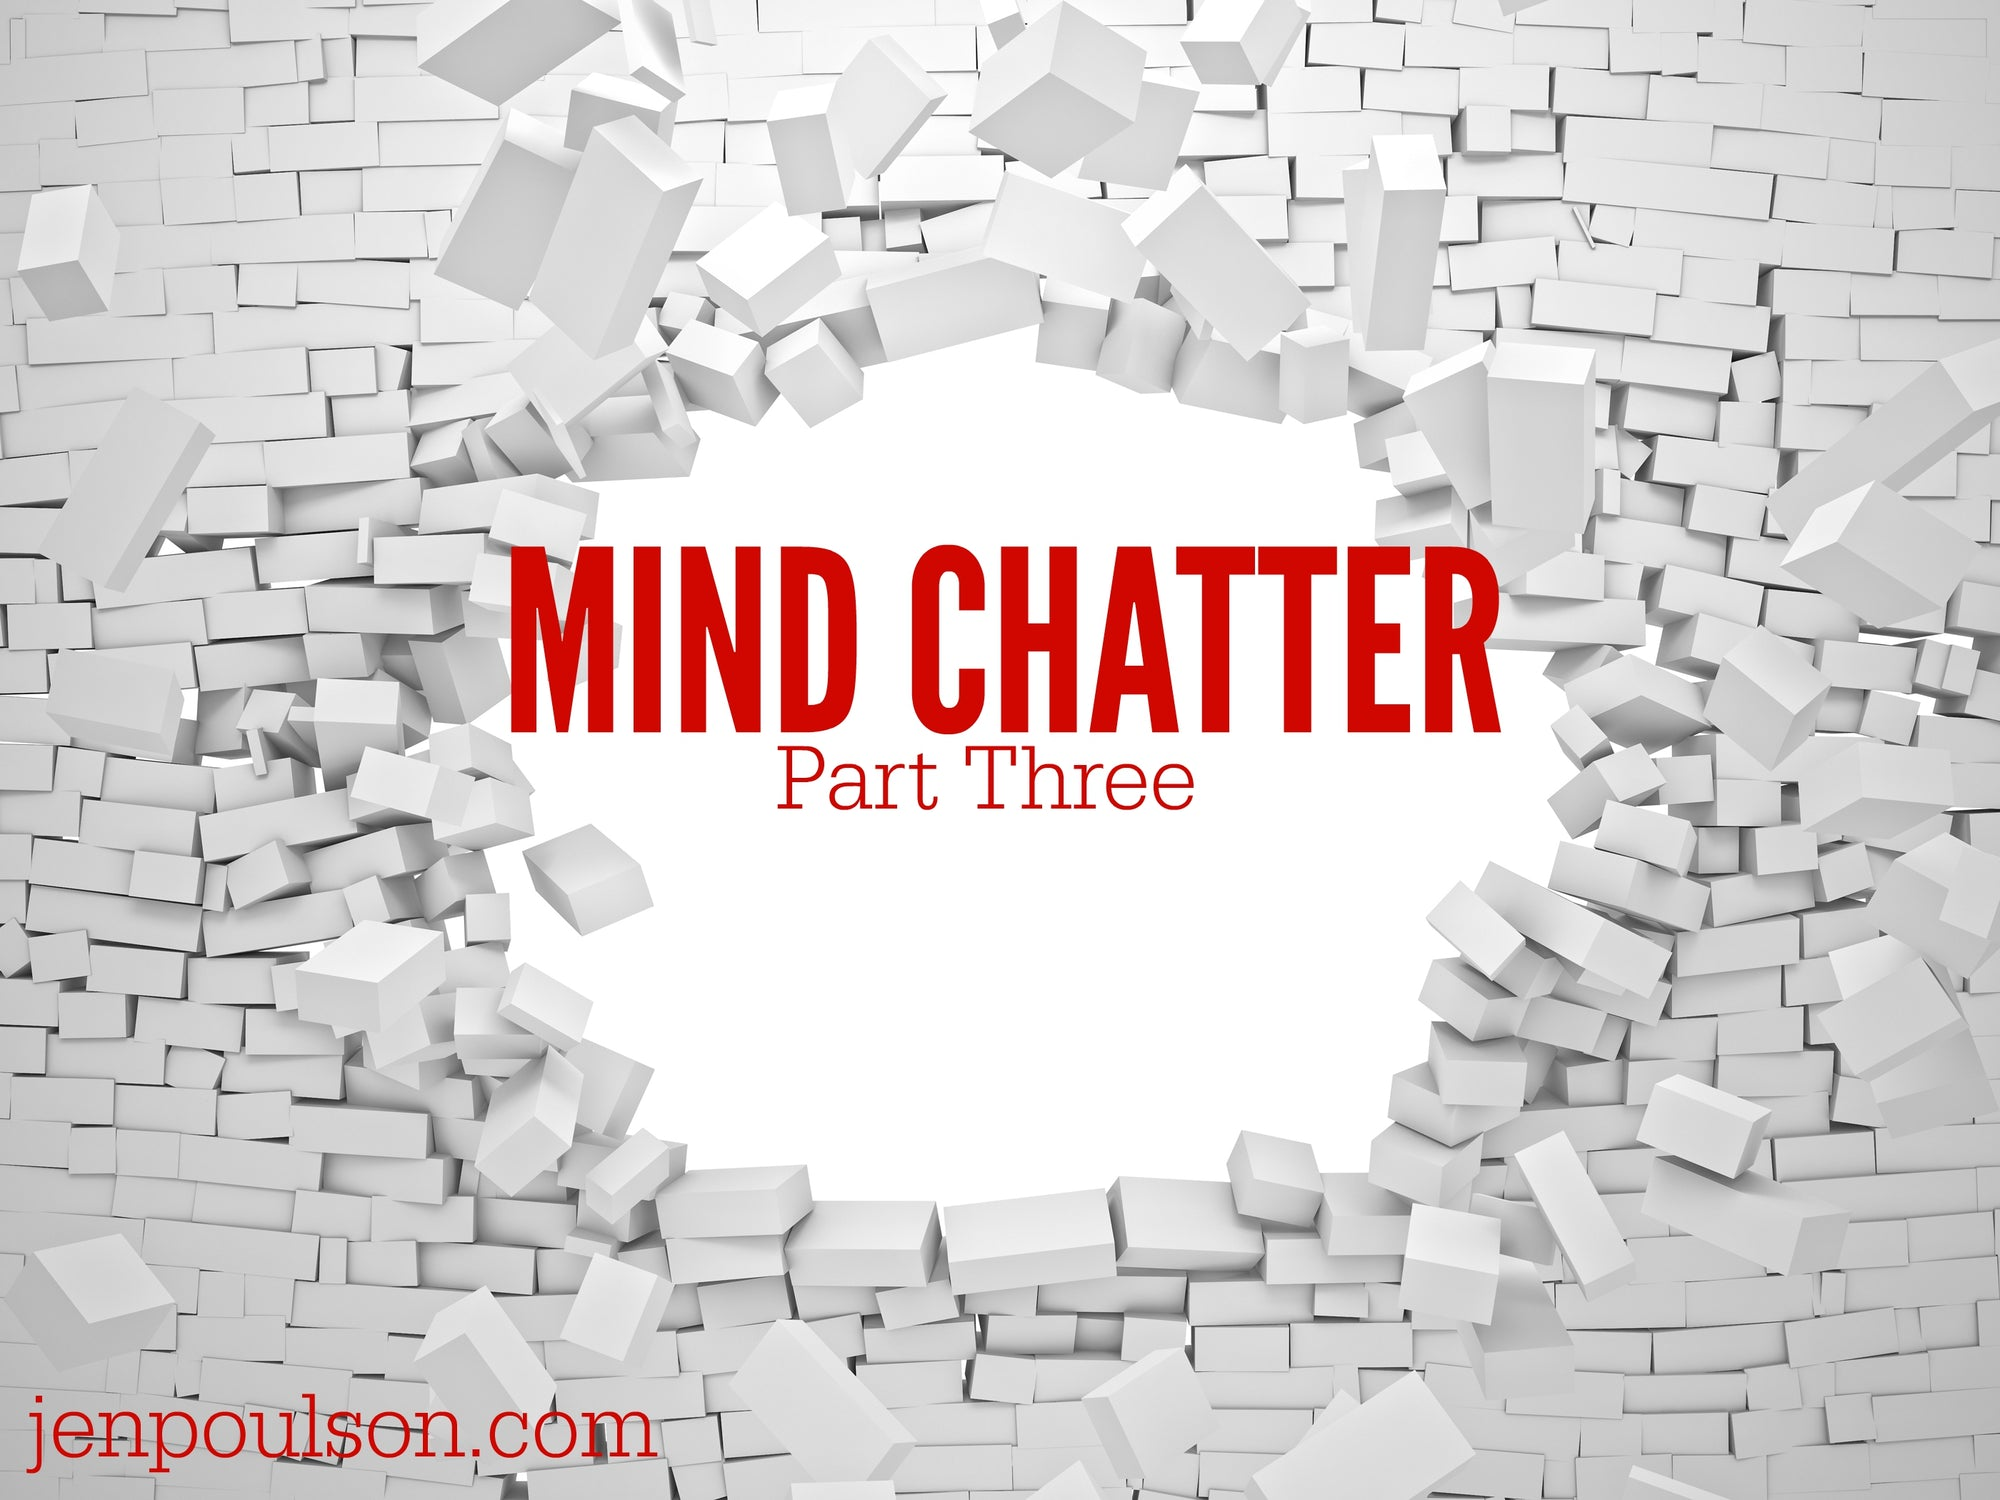 Mind Chatter - 3 Simple Steps to Clean it Up! (Part 3)